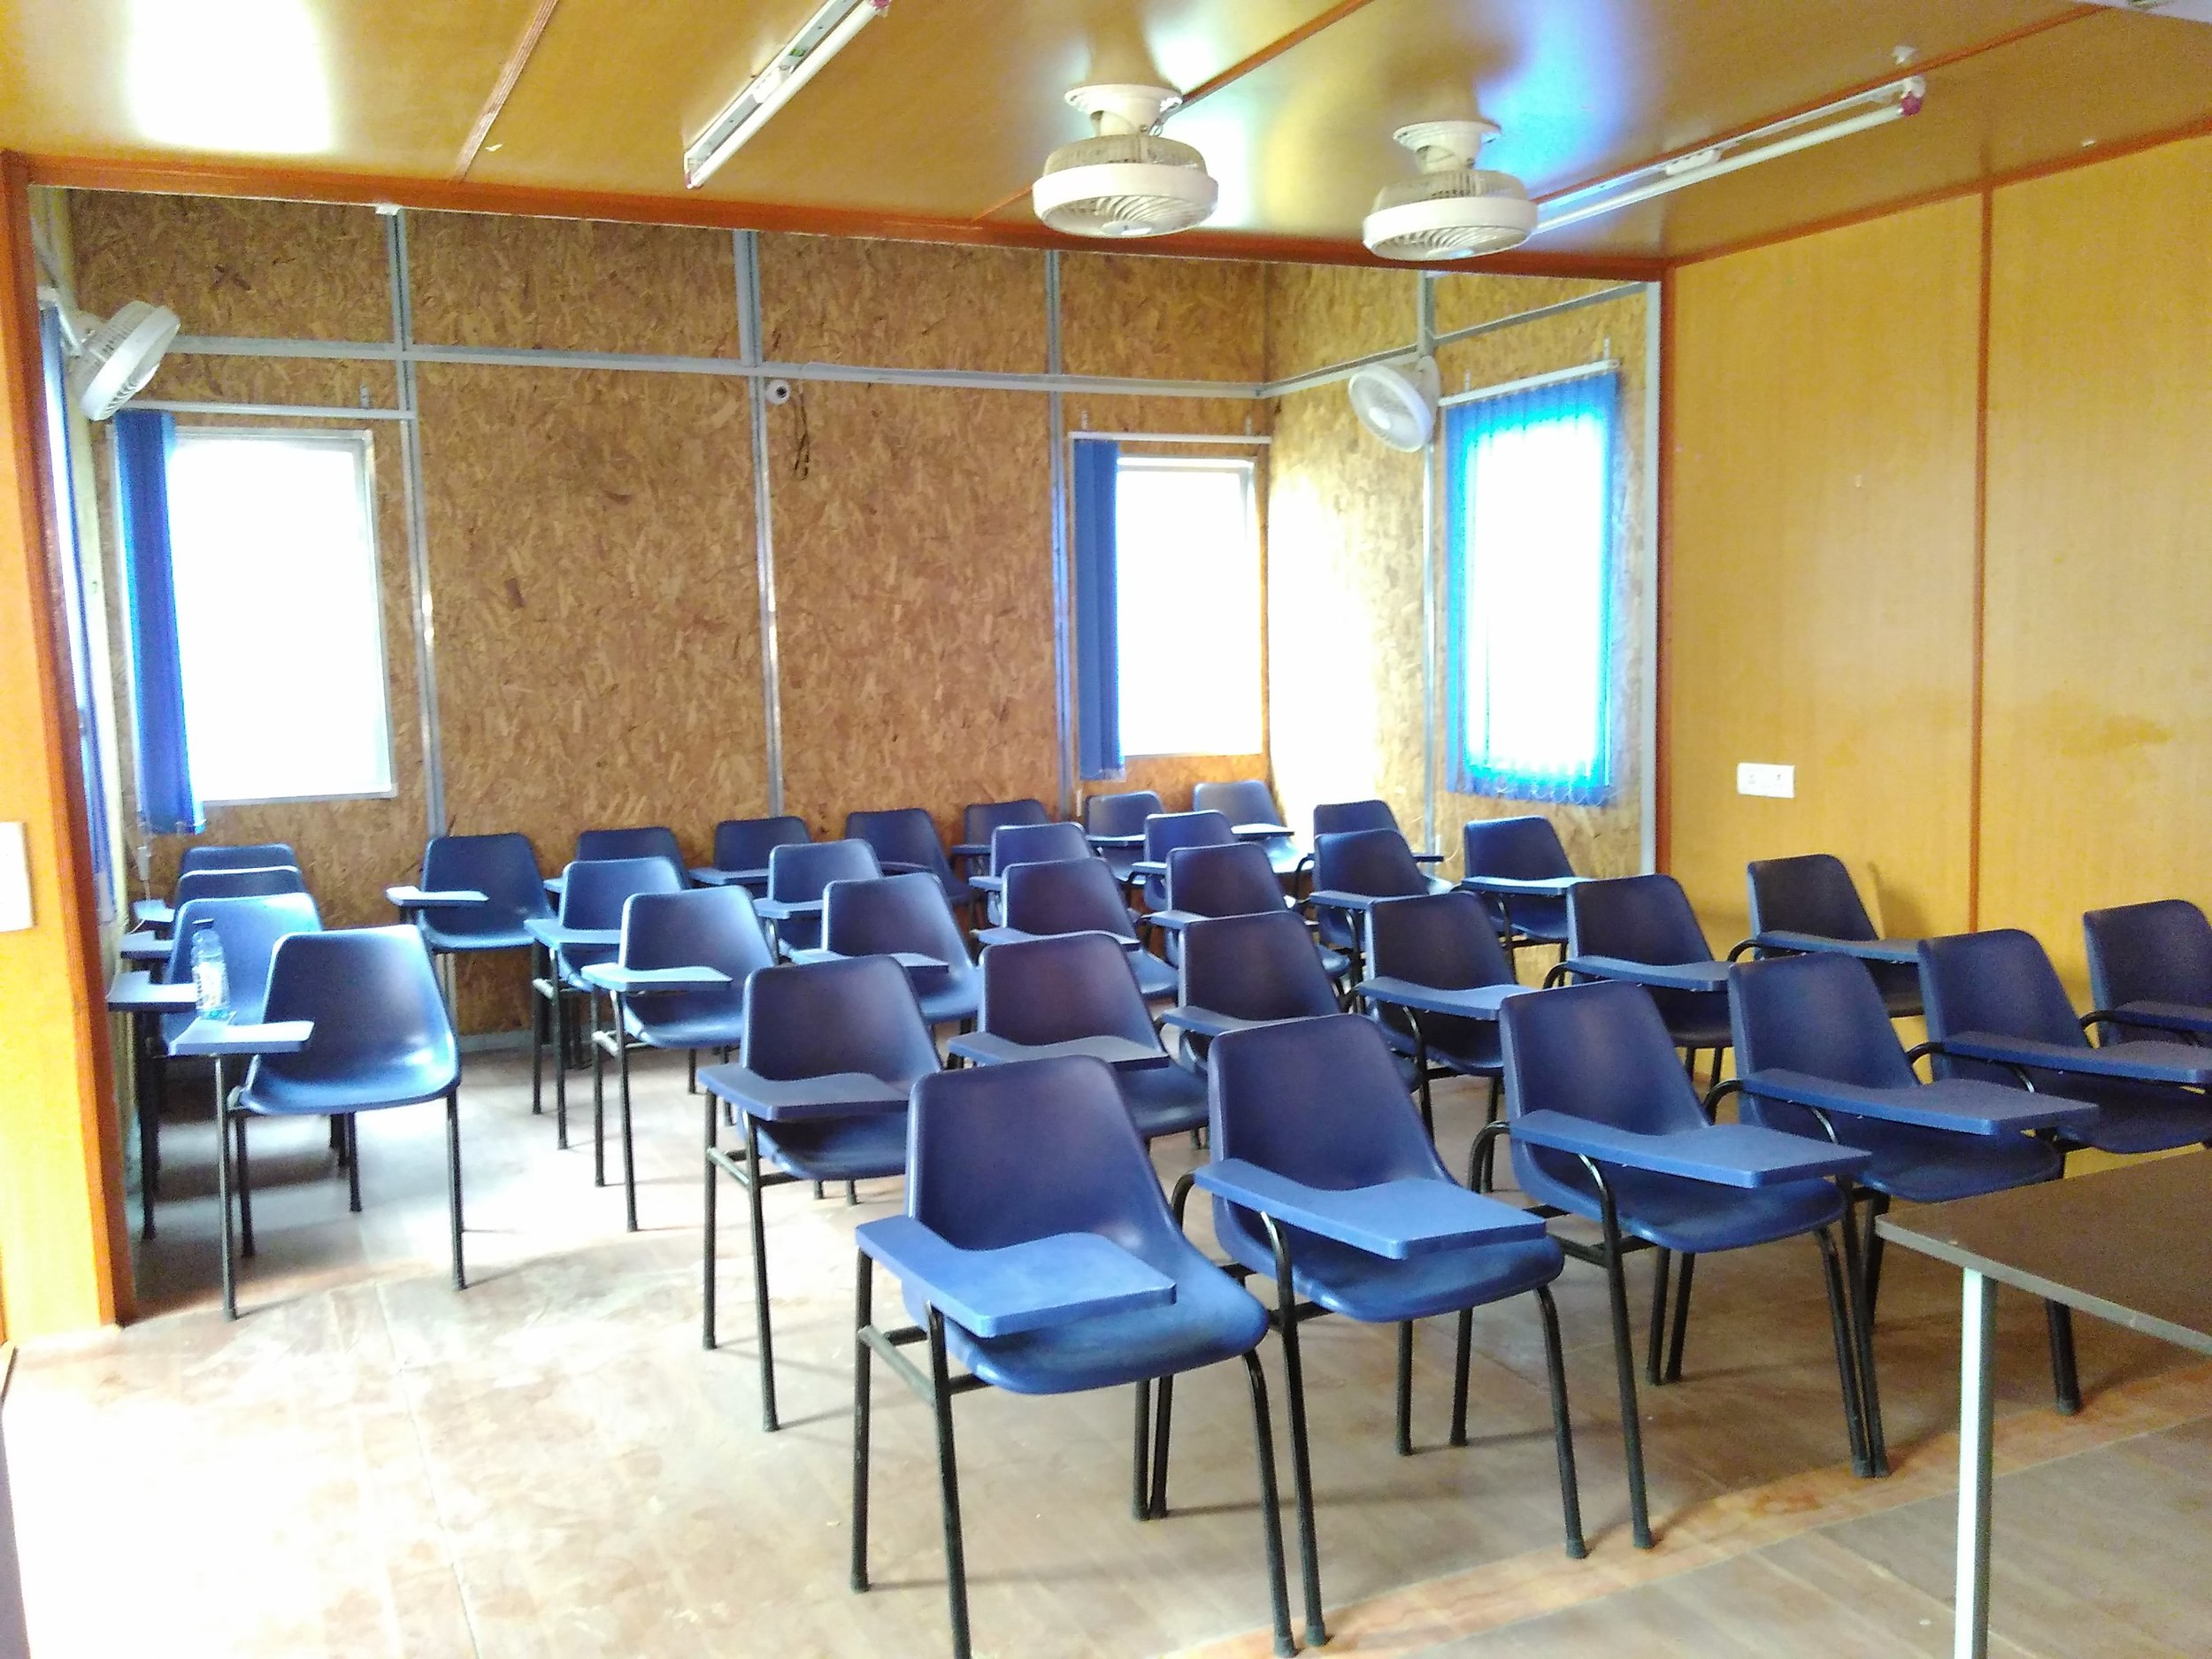 The interior with furniture - seating for 35 students